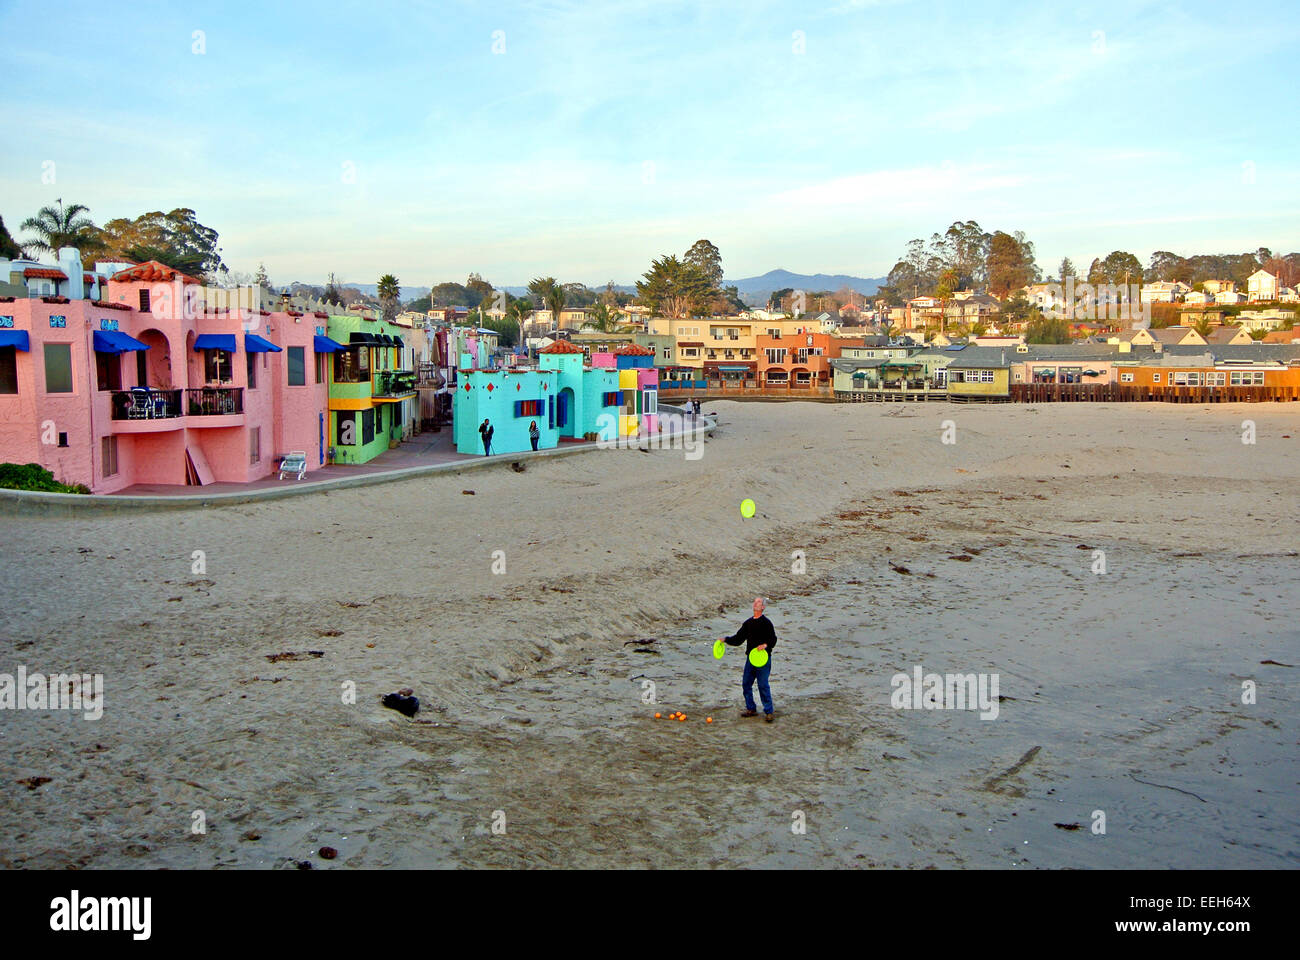 man juggling on beach in Capitola california - Stock Image